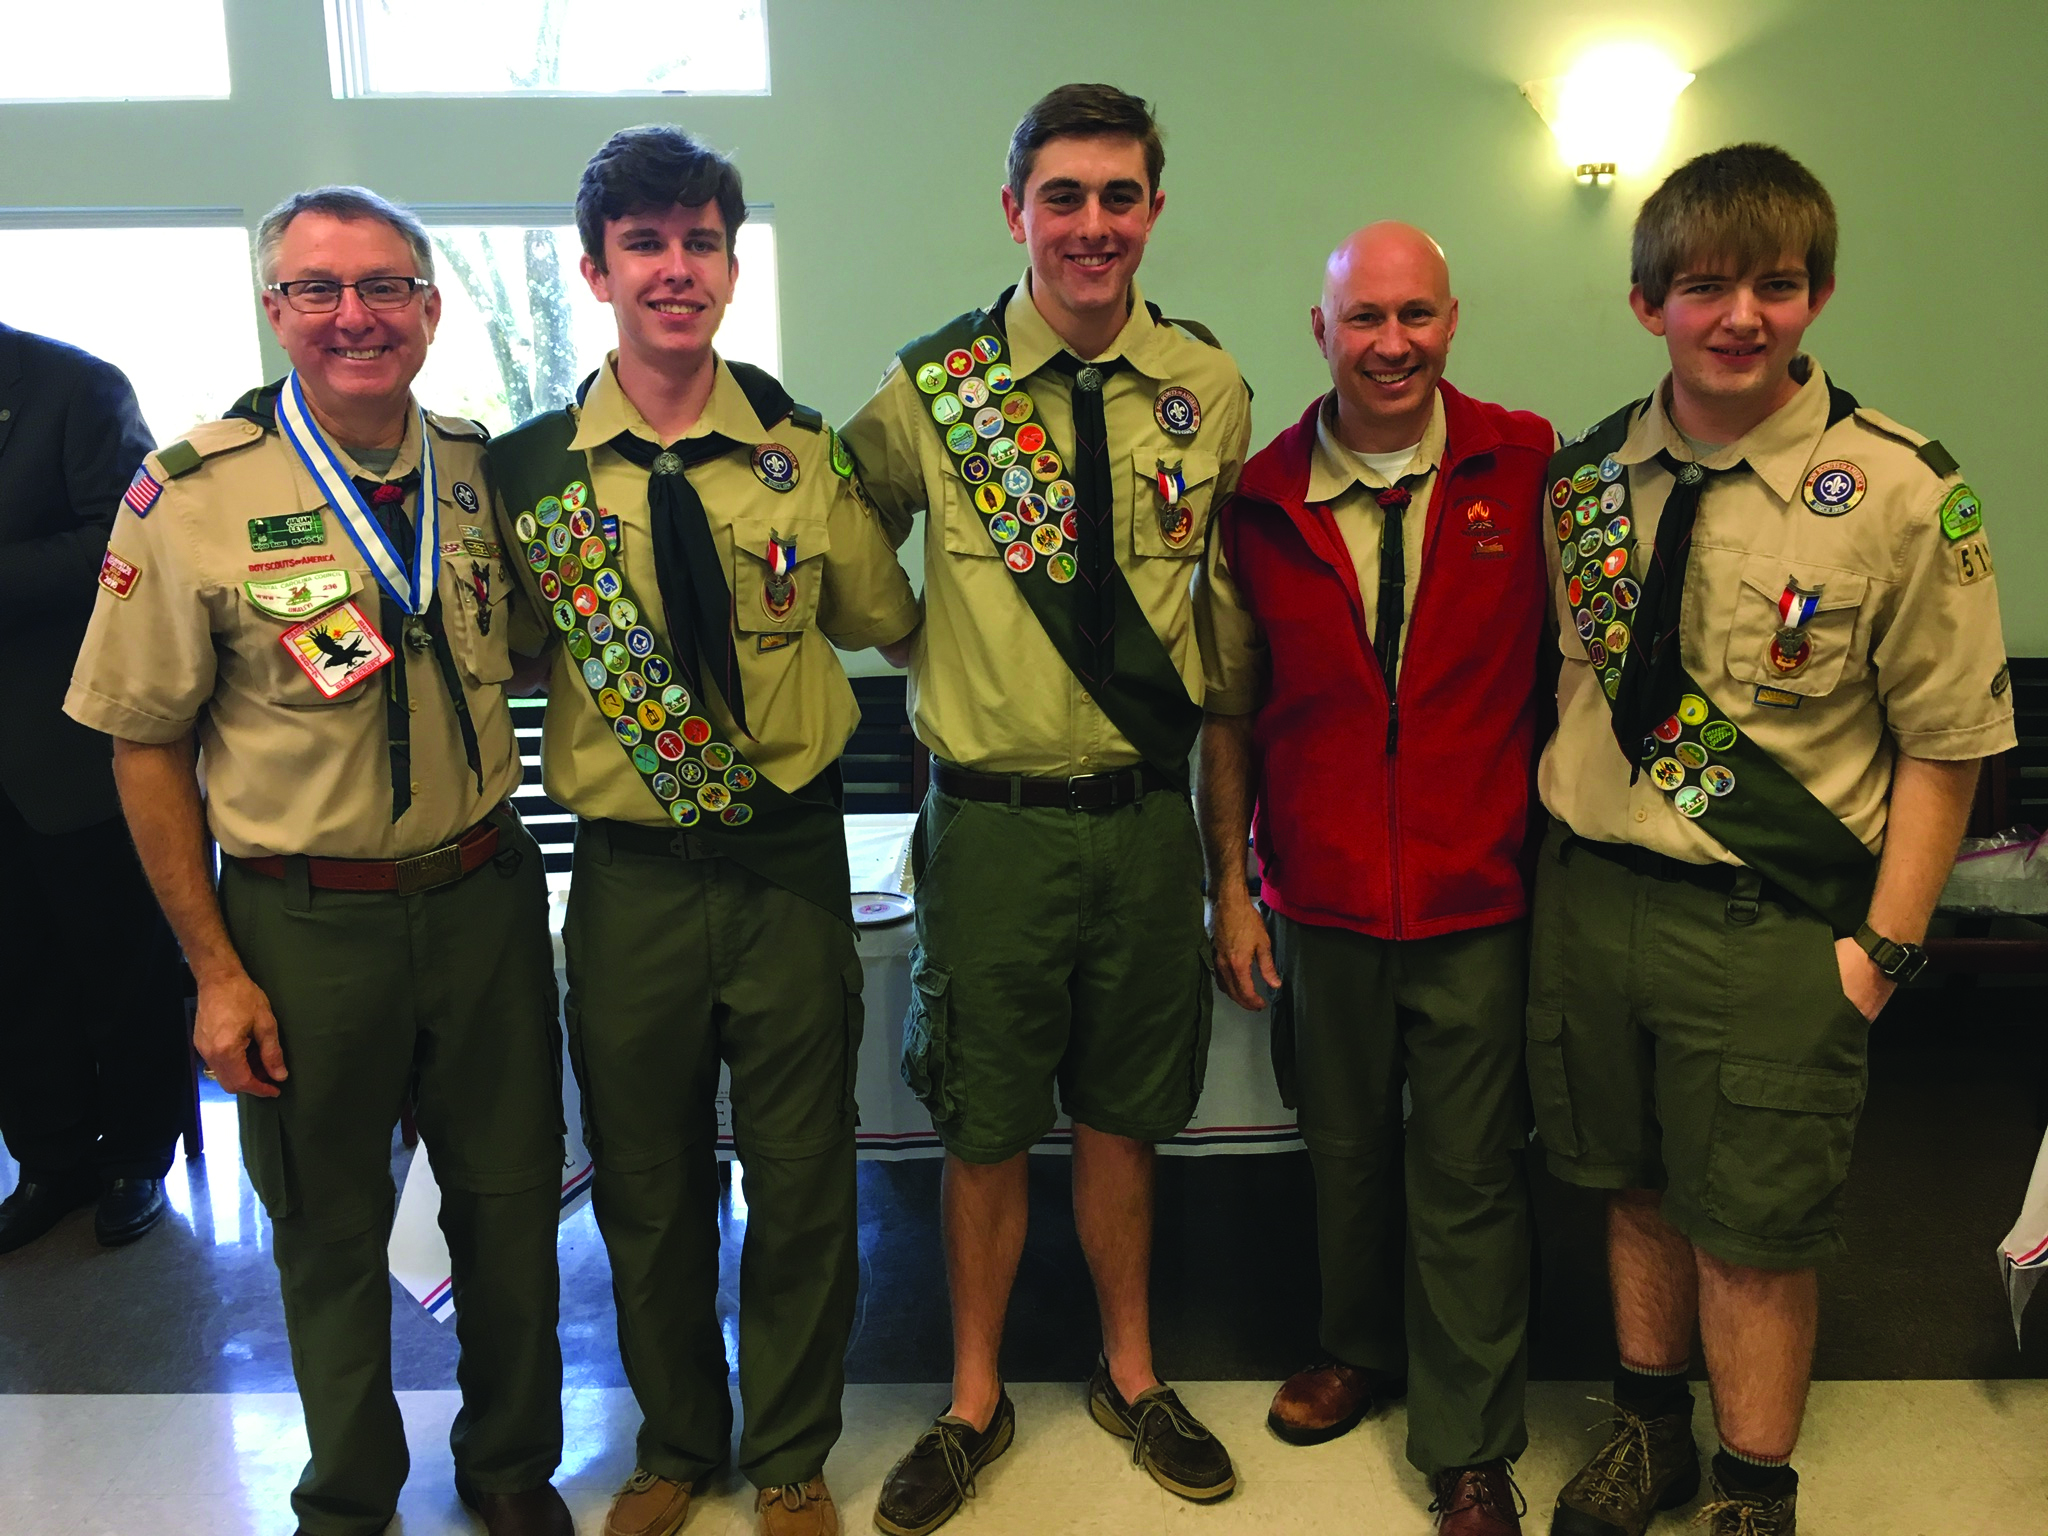 Three members of Daniel Island-based Boy Scout Troop 519 received scouting's highest honor last Sunday, March 4. Earning the prestigious Eagle Scout Award are Edward Snyder, Cameron Kimner and Cameron Bush. Each had to complete at least 21 Eagle-required merit badges, hold leadership positions in the troop, perform hours of community service, and complete an Eagle Scout Service Project. Pictured at Church of the Holy Cross after the ceremony are (left to right): Troop Committee Chair Dr. Julian Levin, Edward Snyder, Cameron Bush, Scoutmaster Tony Duttera, and Cameron Kimner.